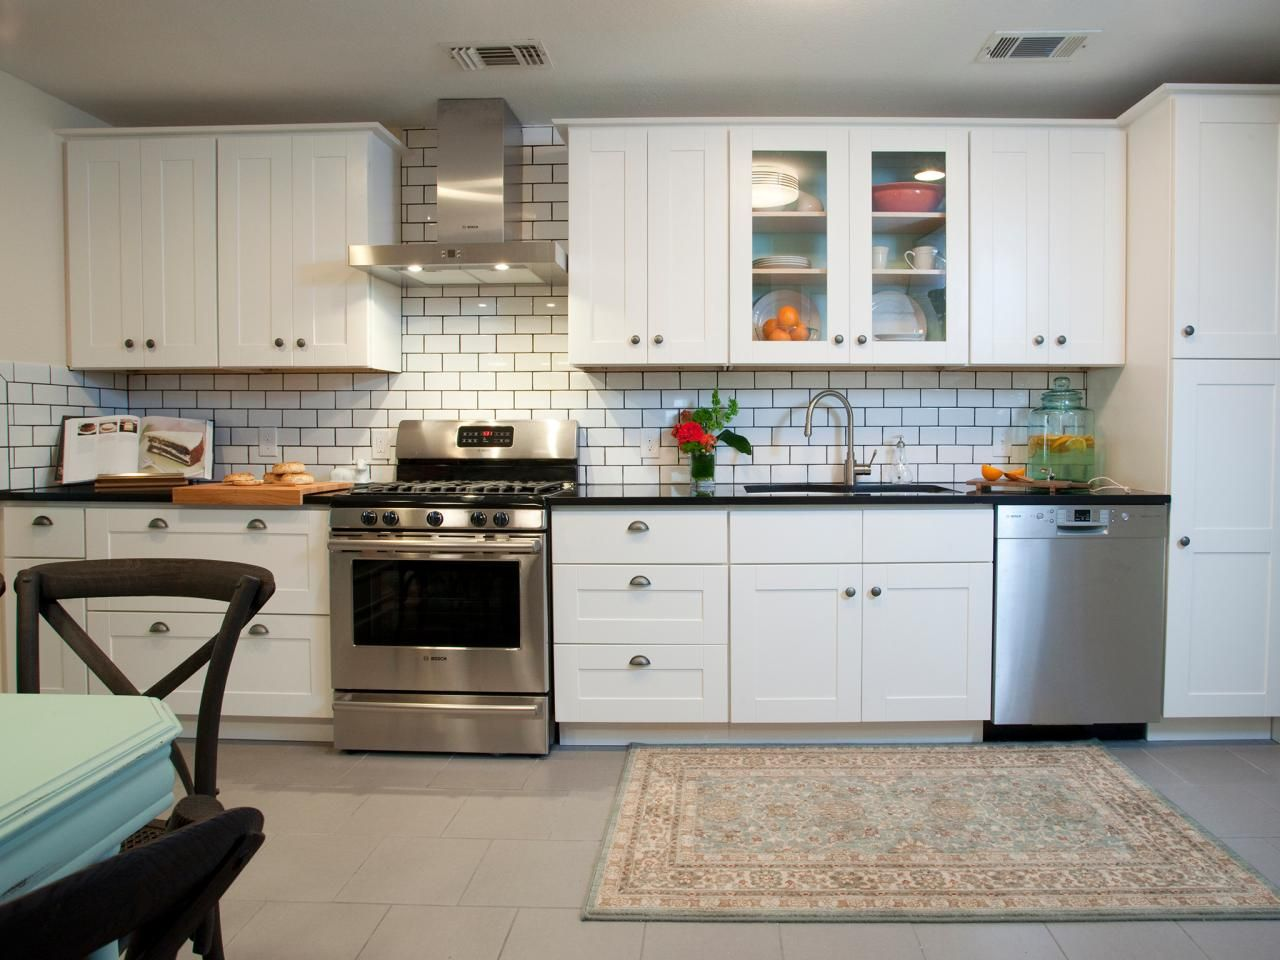 White Kitchen Subway Tile dress your kitchen in style with some white subway tiles!